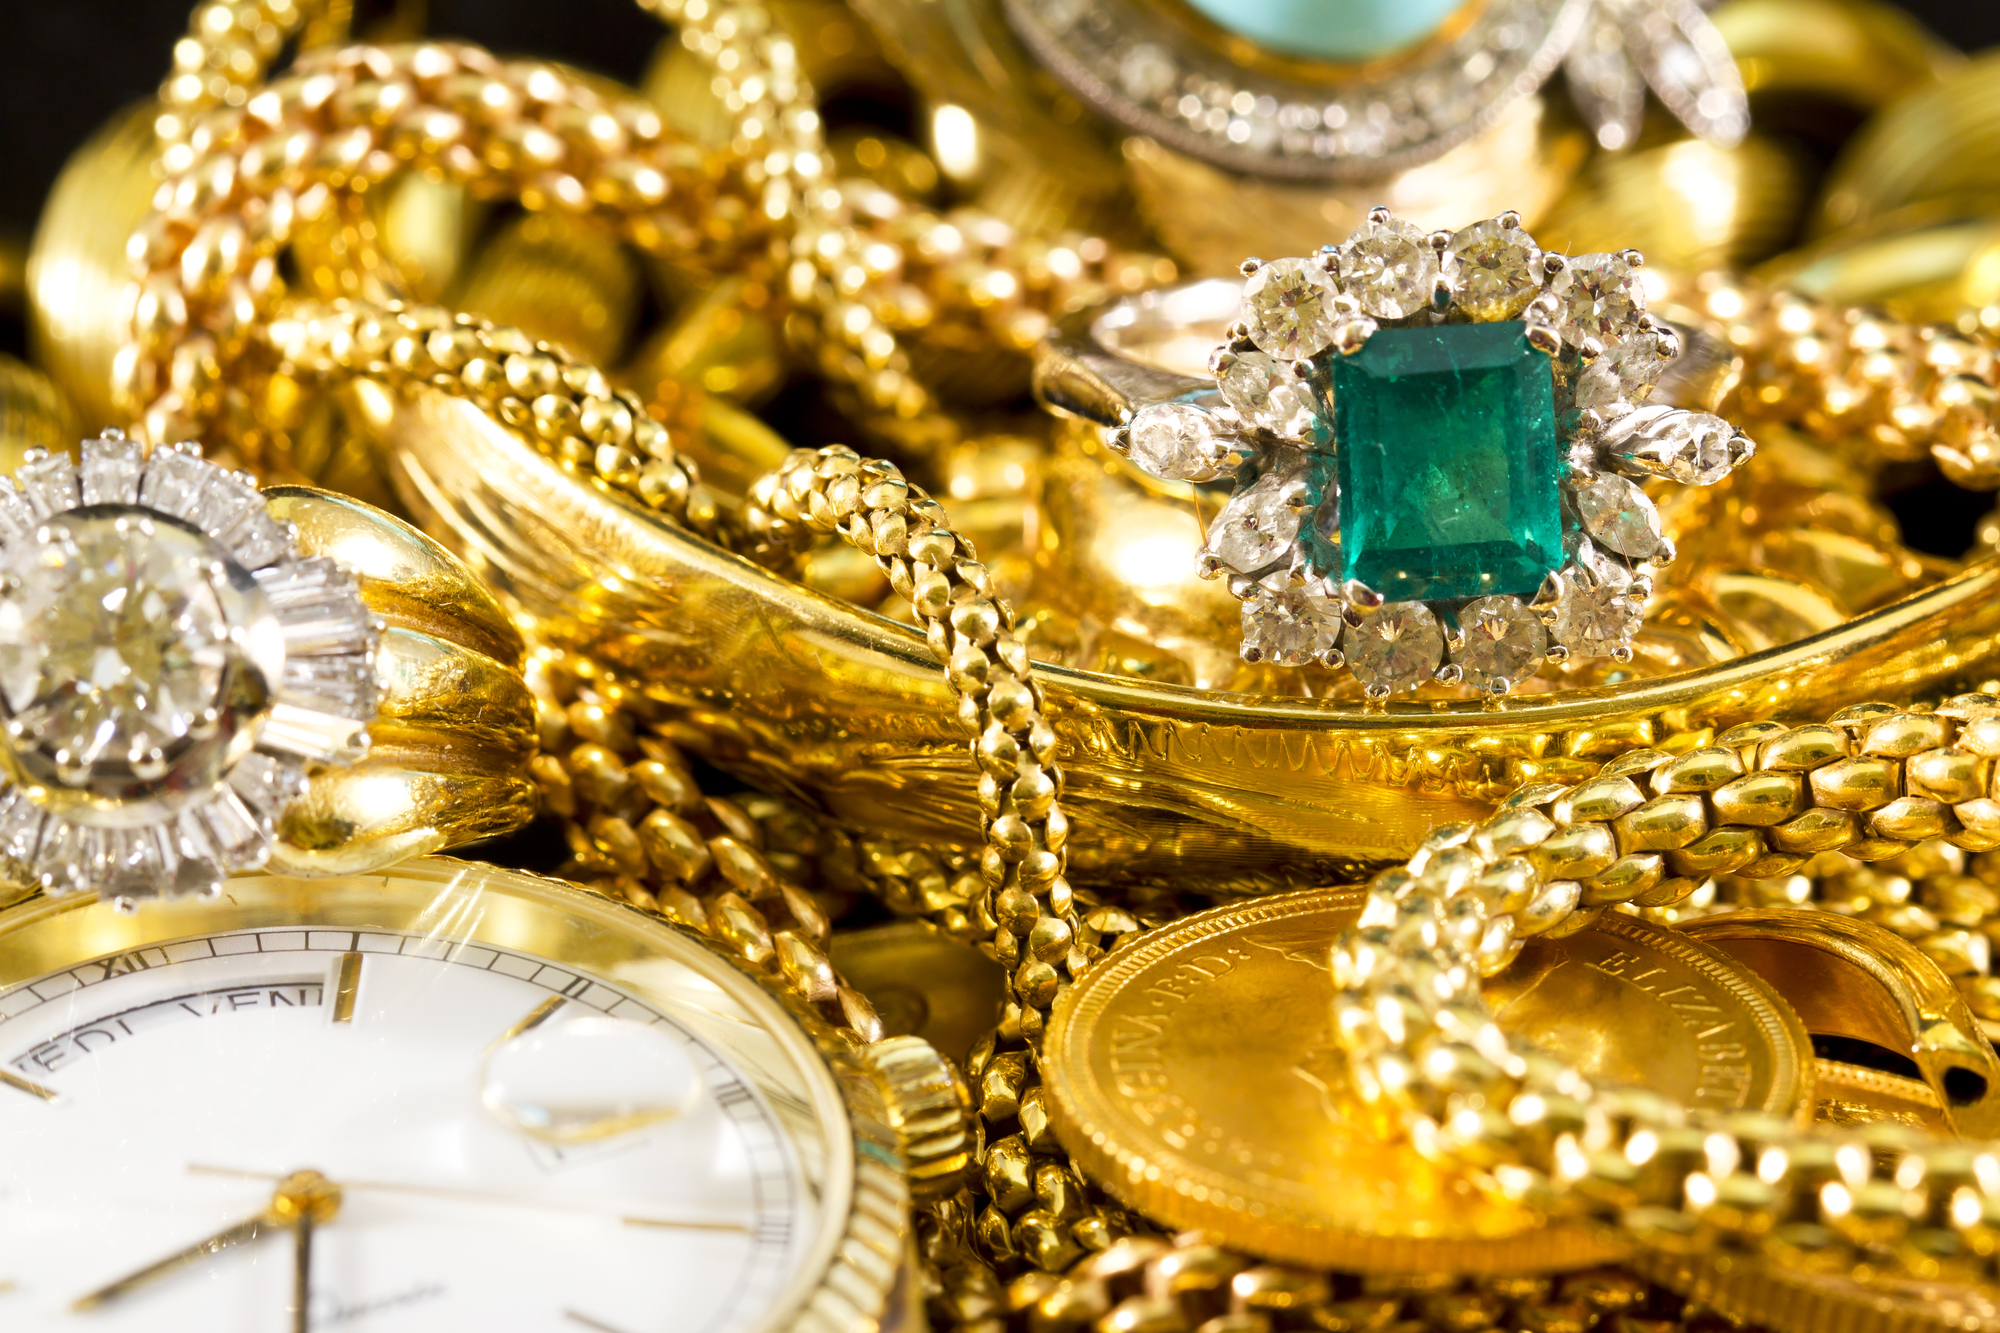 Do's & Don'ts of Pawning Jewelry - Coins & Stuff - High Point | NearSay